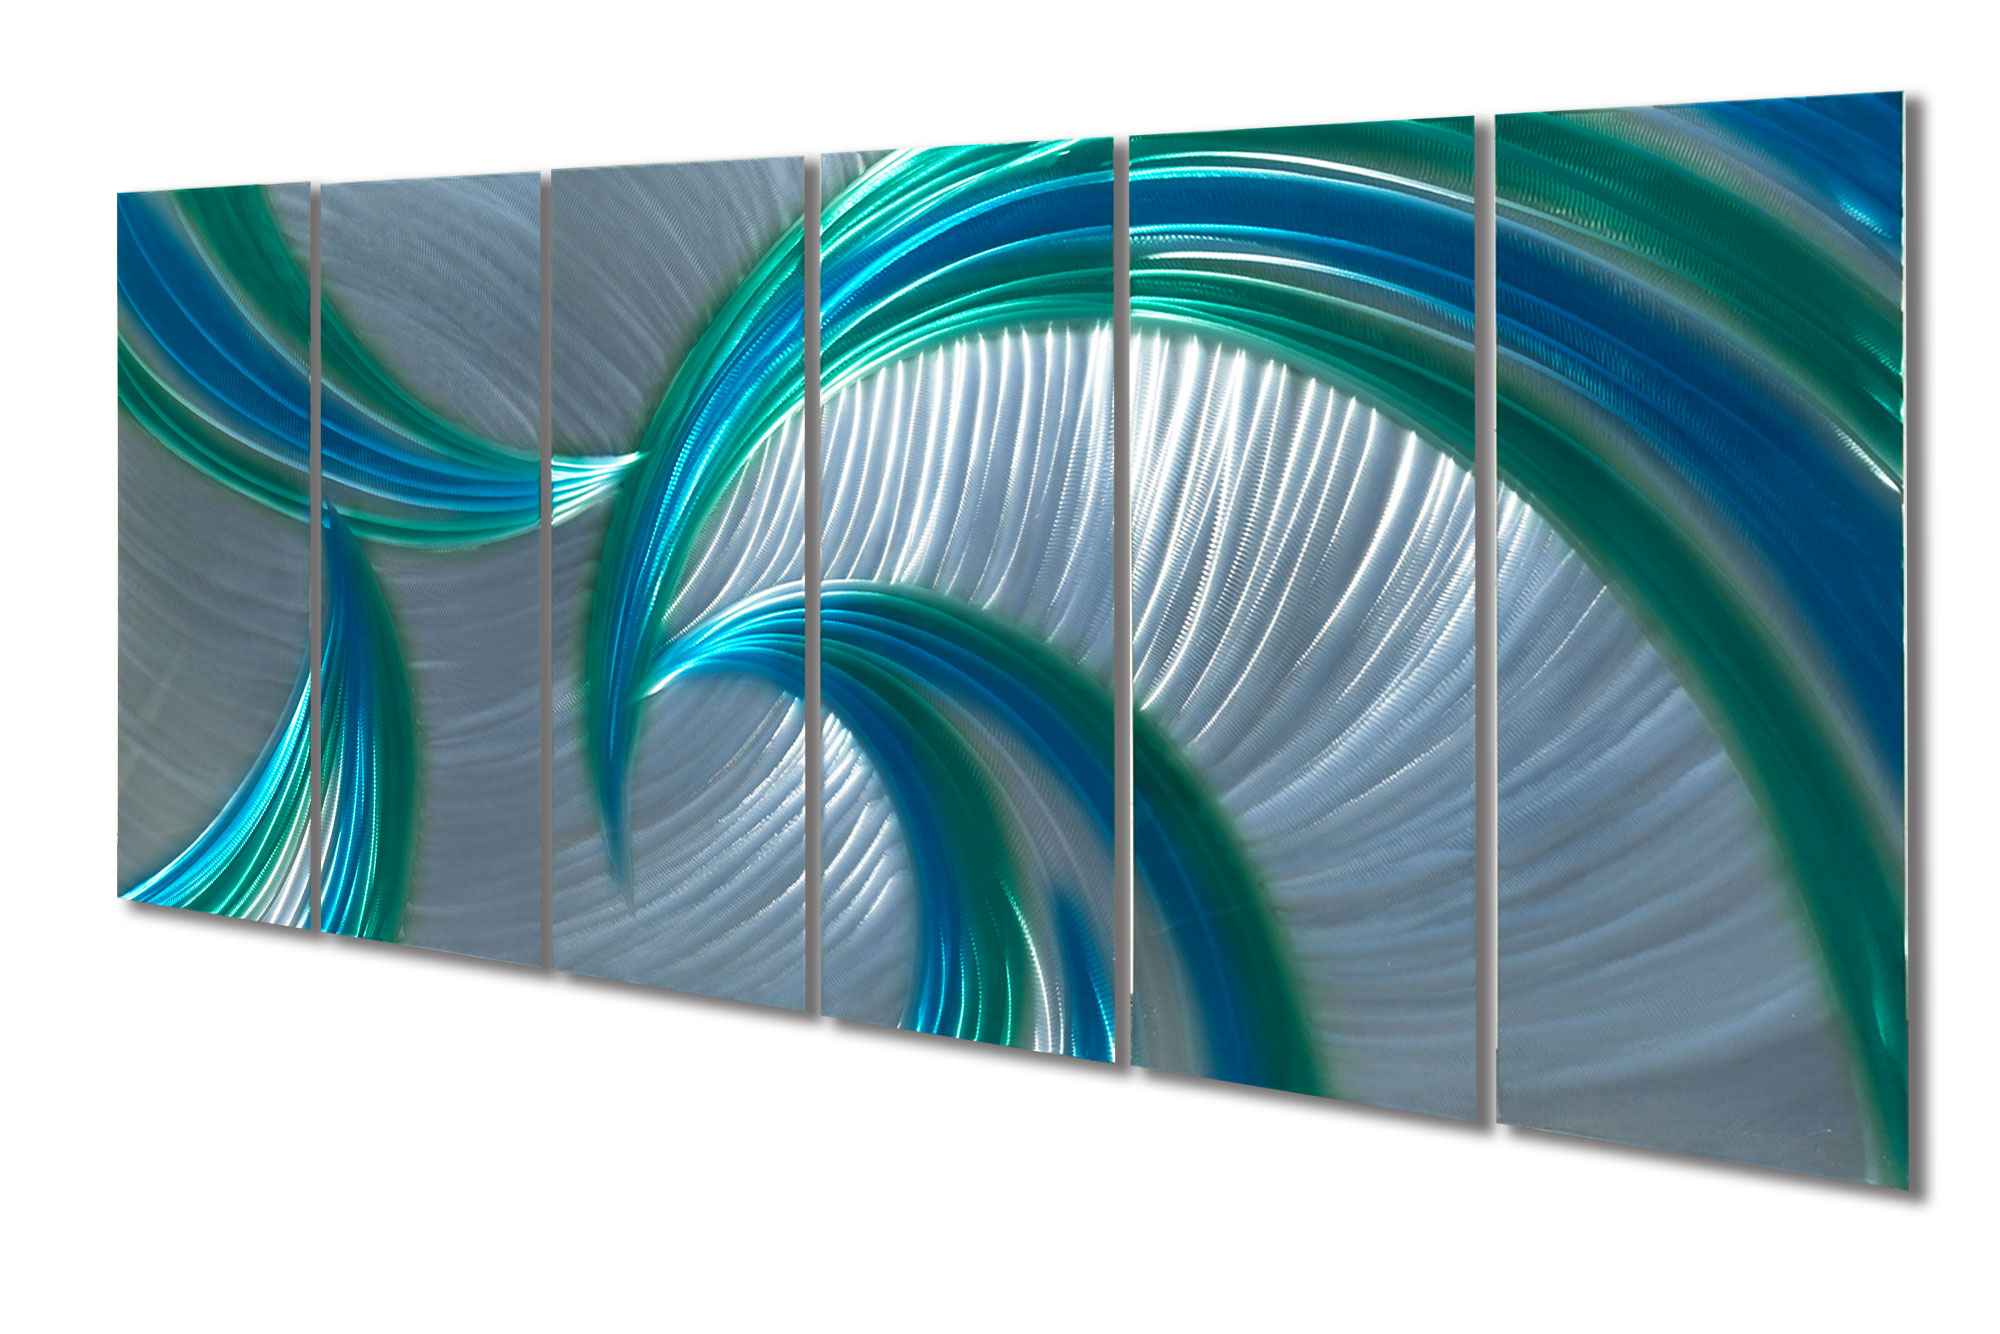 Blue Metal Wall Art Extraordinary Tempest Blue Green 48X125  Metal Wall Art Abstract Sculpture Inspiration